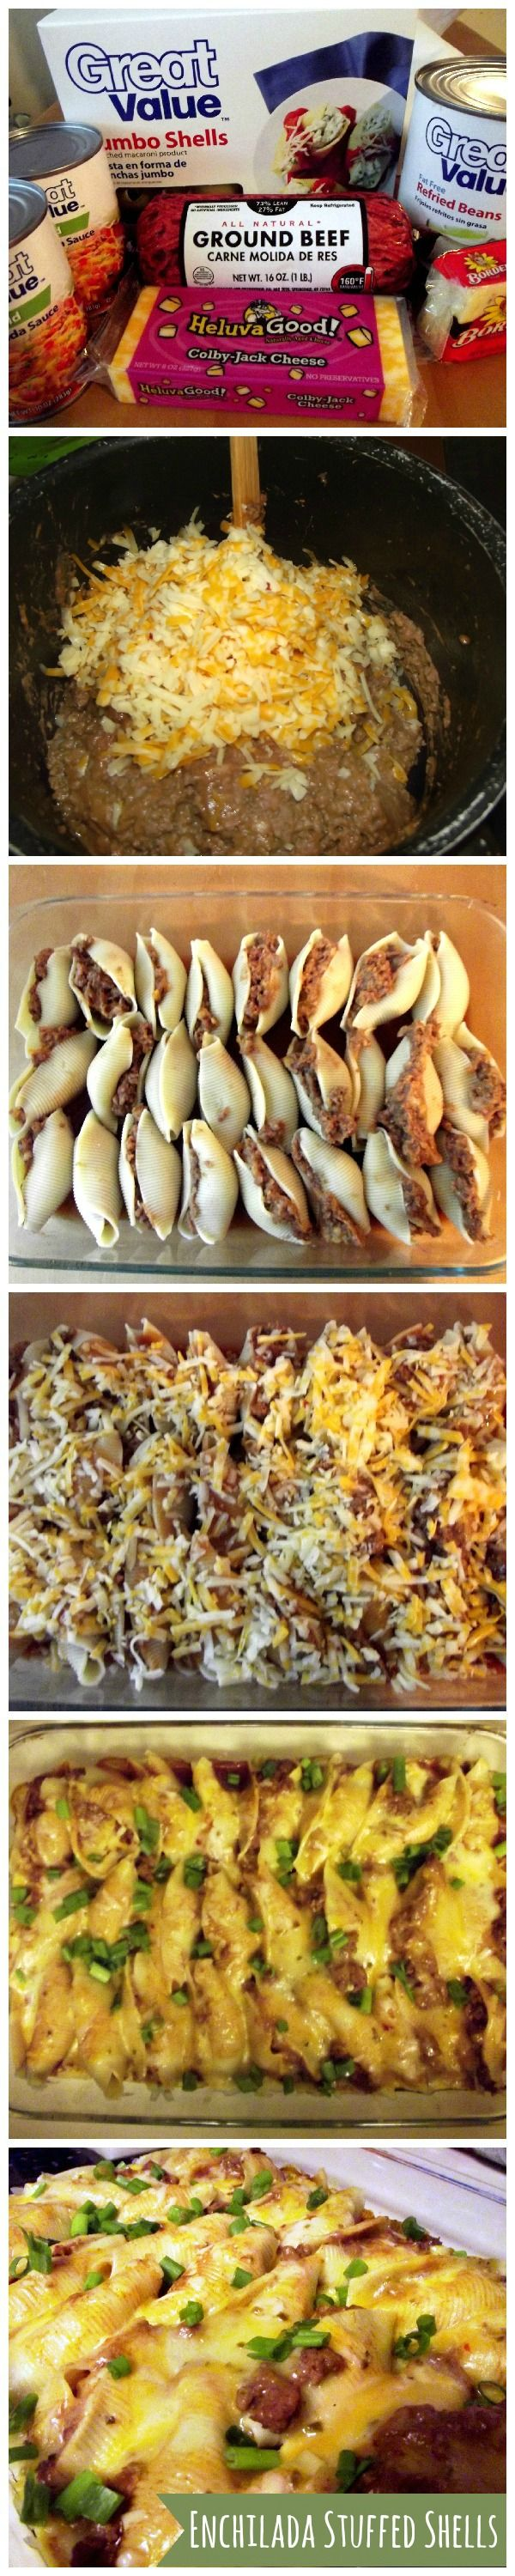 Enchilada Stuffed shells.  --  this makes a LOT! Could halve the recipe for dinner.